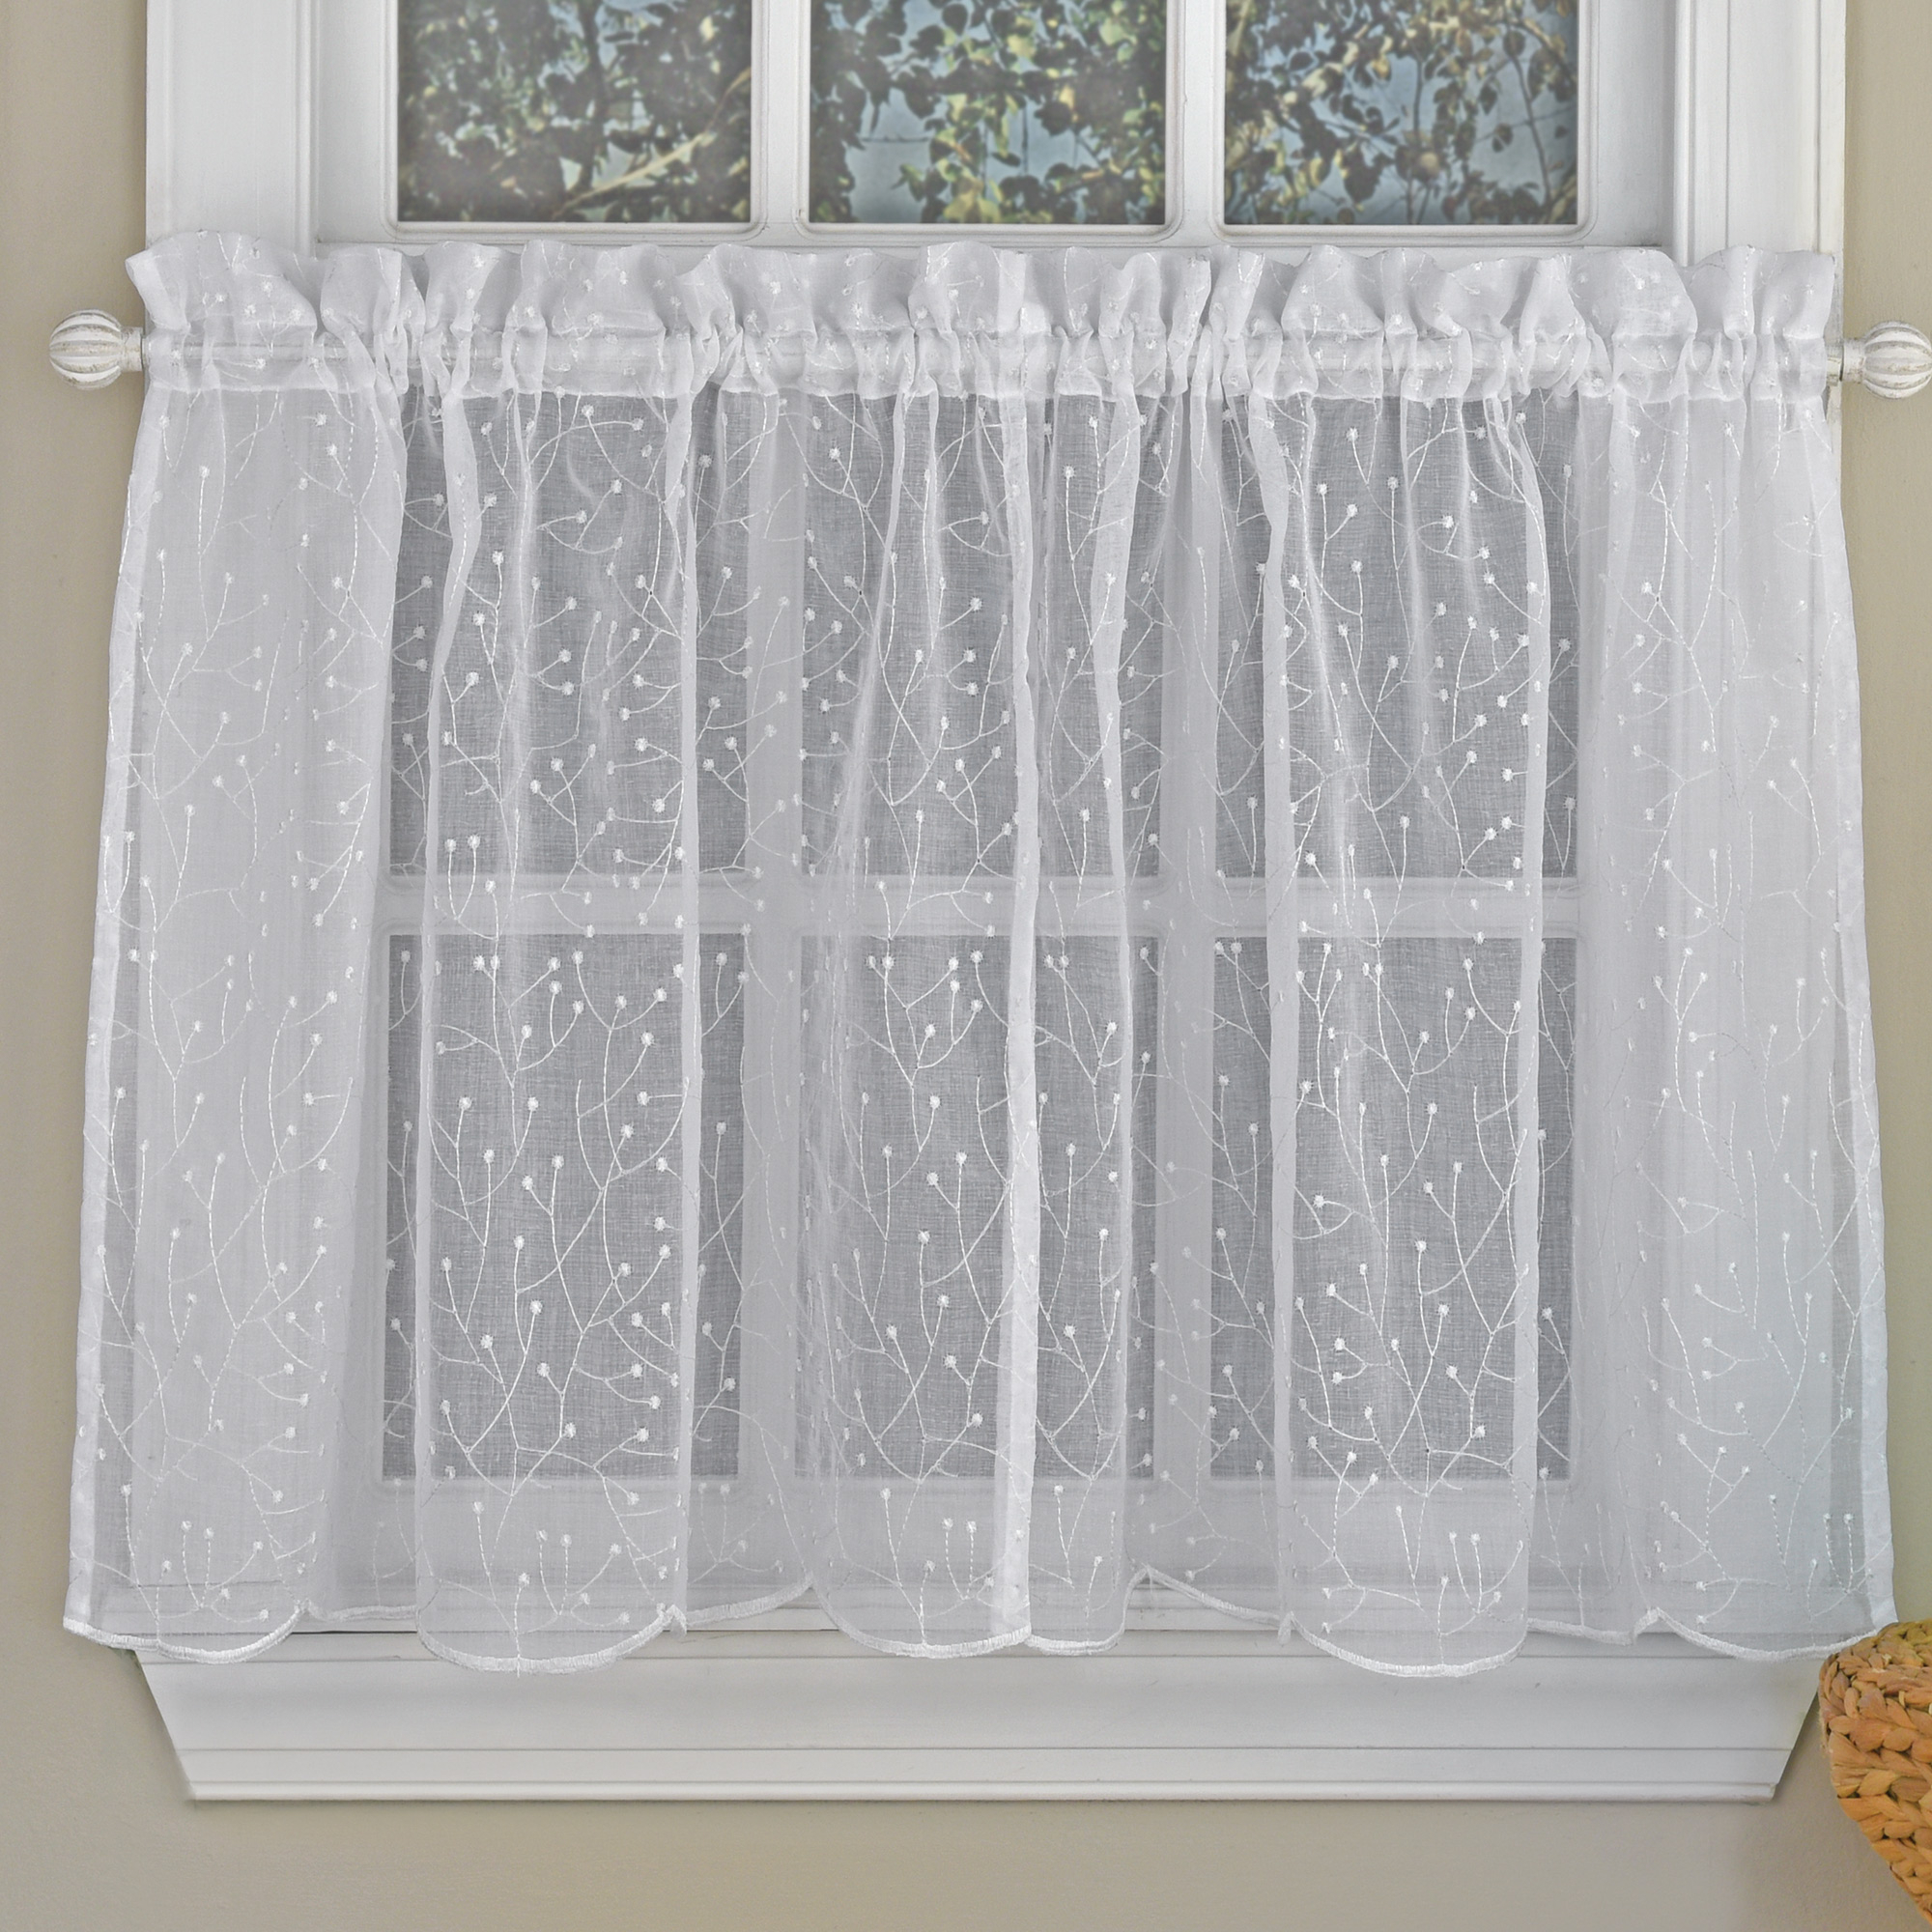 Floral Spray Semi Sheer Kitchen Window Curtain Tier Pair Or Valance White For Semi Sheer Rod Pocket Kitchen Curtain Valance And Tiers Sets (View 8 of 20)